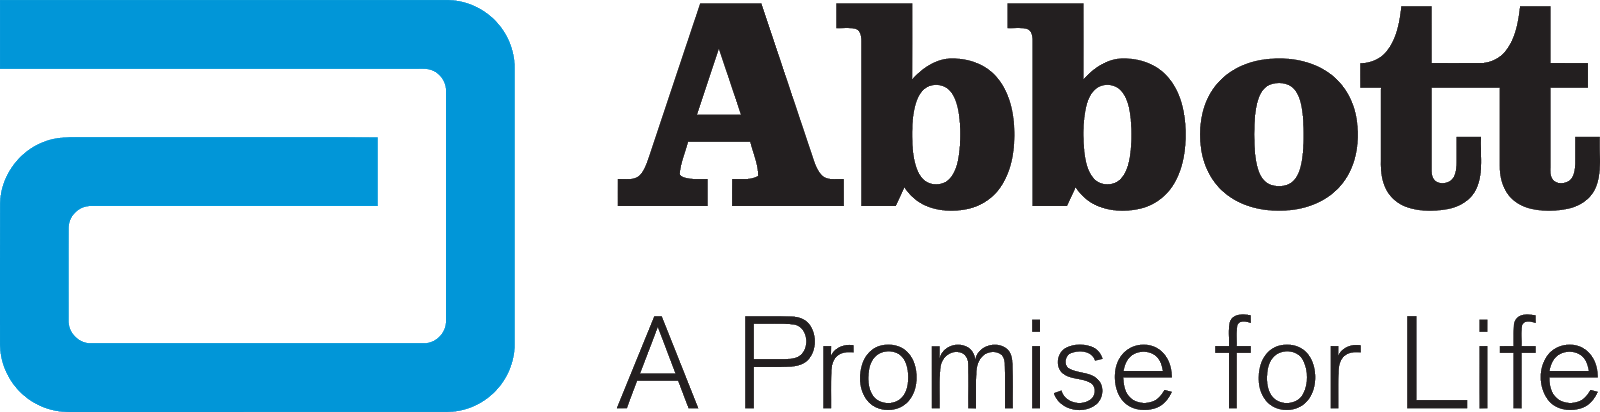 Abbott is one of the best medical device companies in Singapore